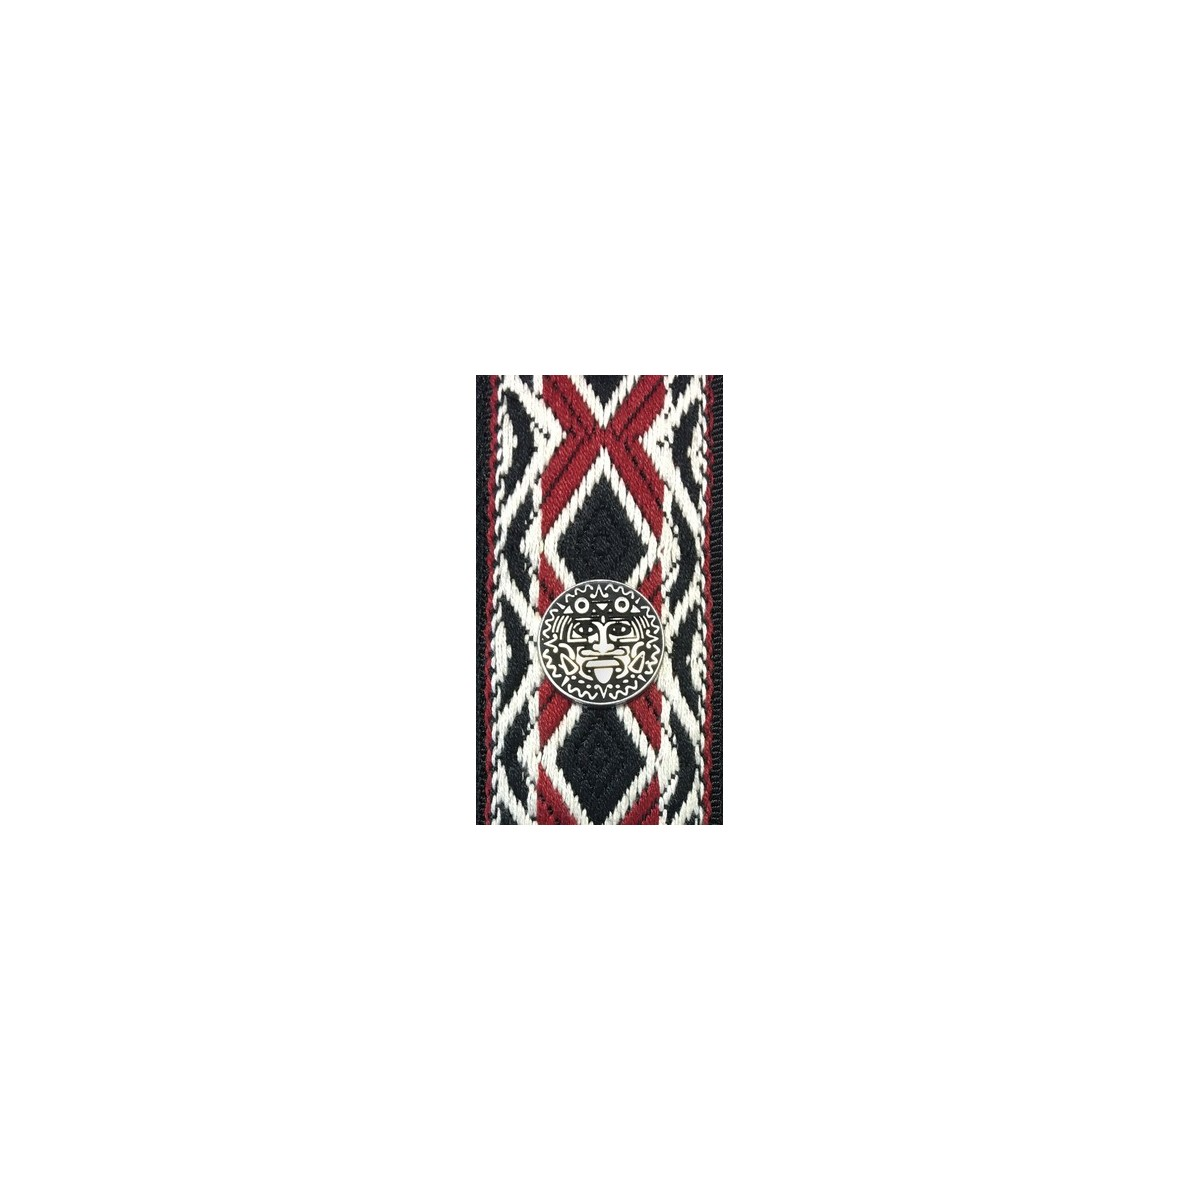 Tonepros Avt2m Wraparound Bridge Prs Santana Chrome